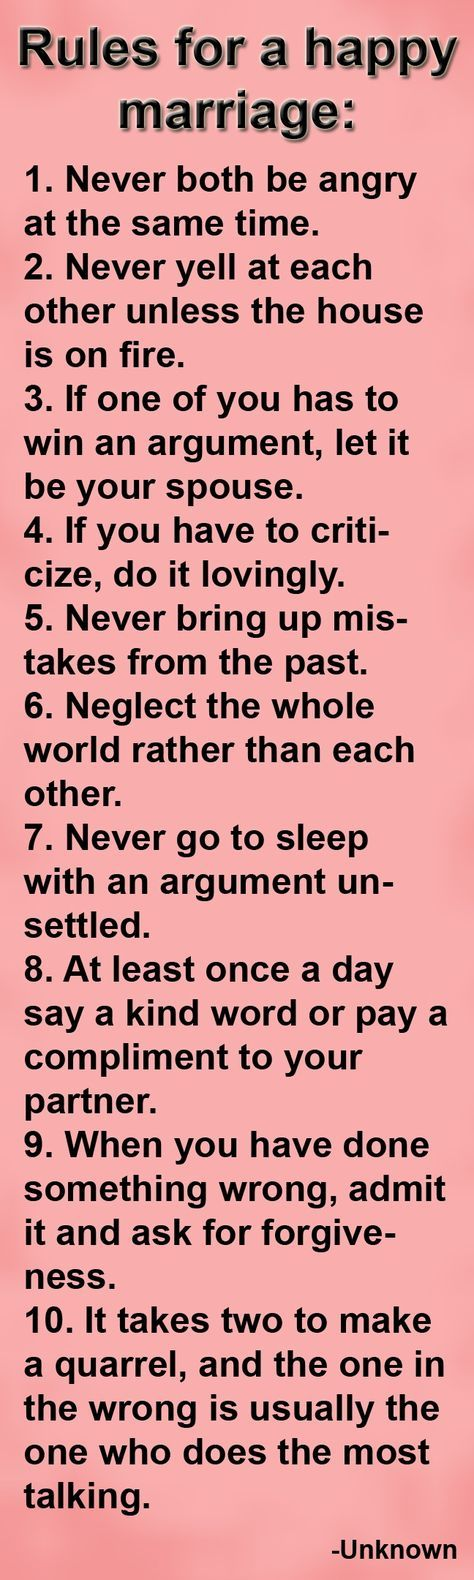 Positive Marriage Quotes | Handsome, Relationships and Quotes marriage